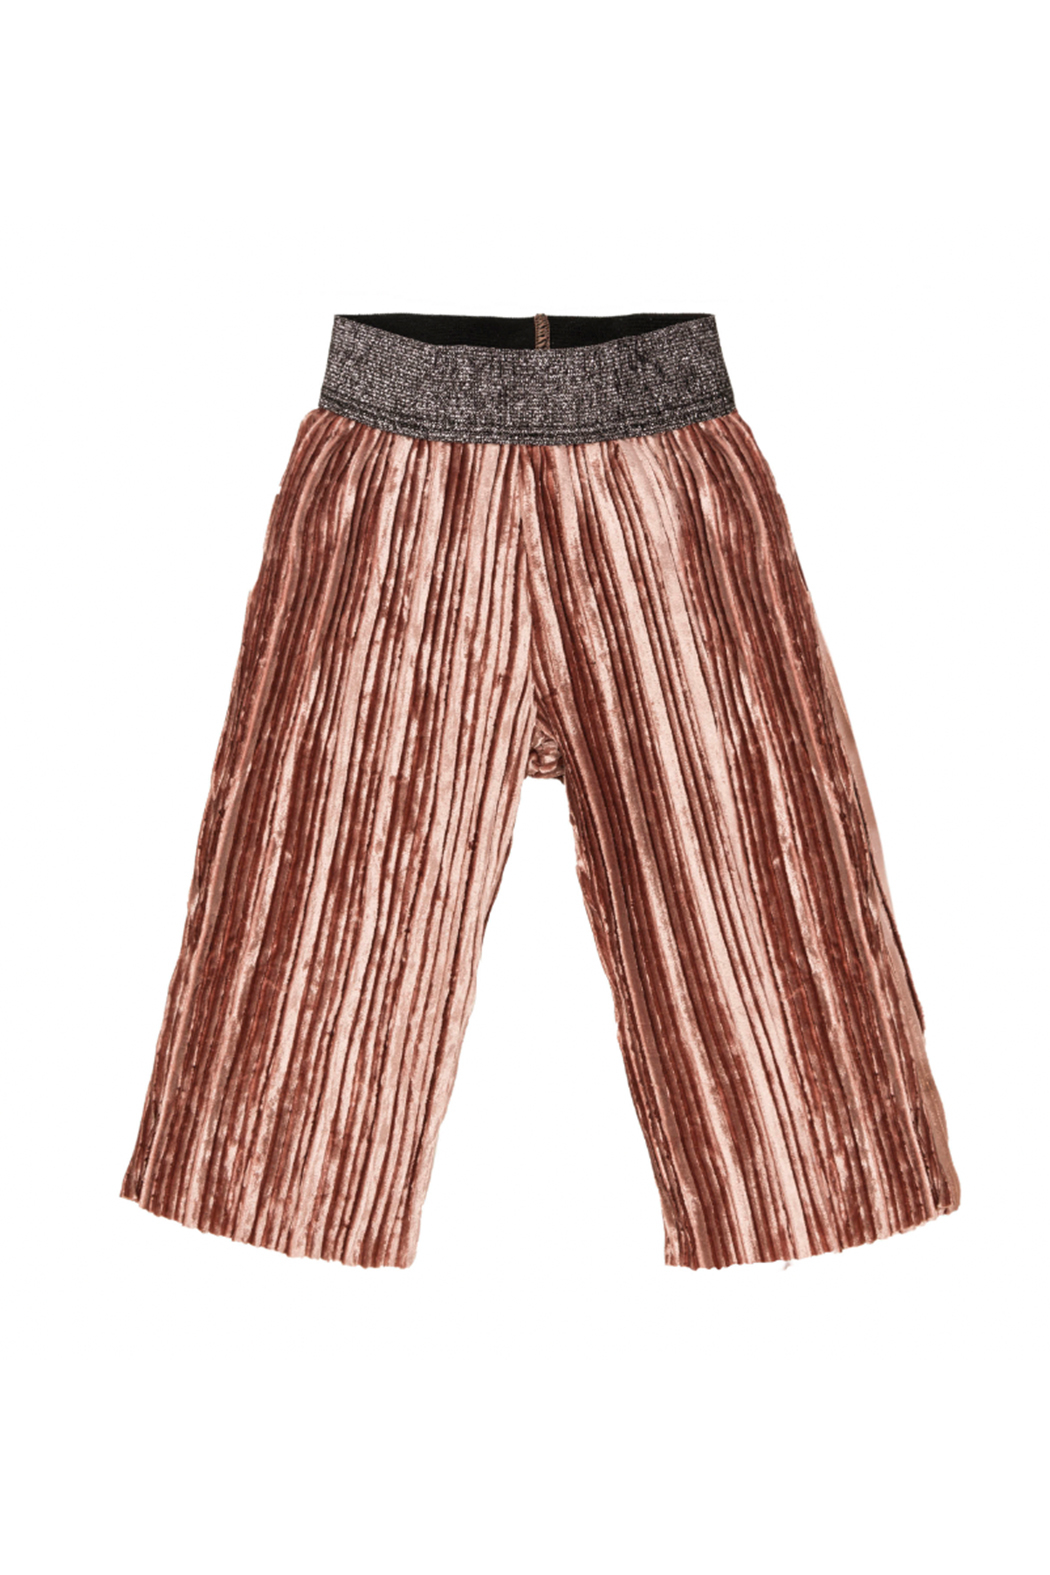 EMC Pleated Knit Velour Trousers - Main Image